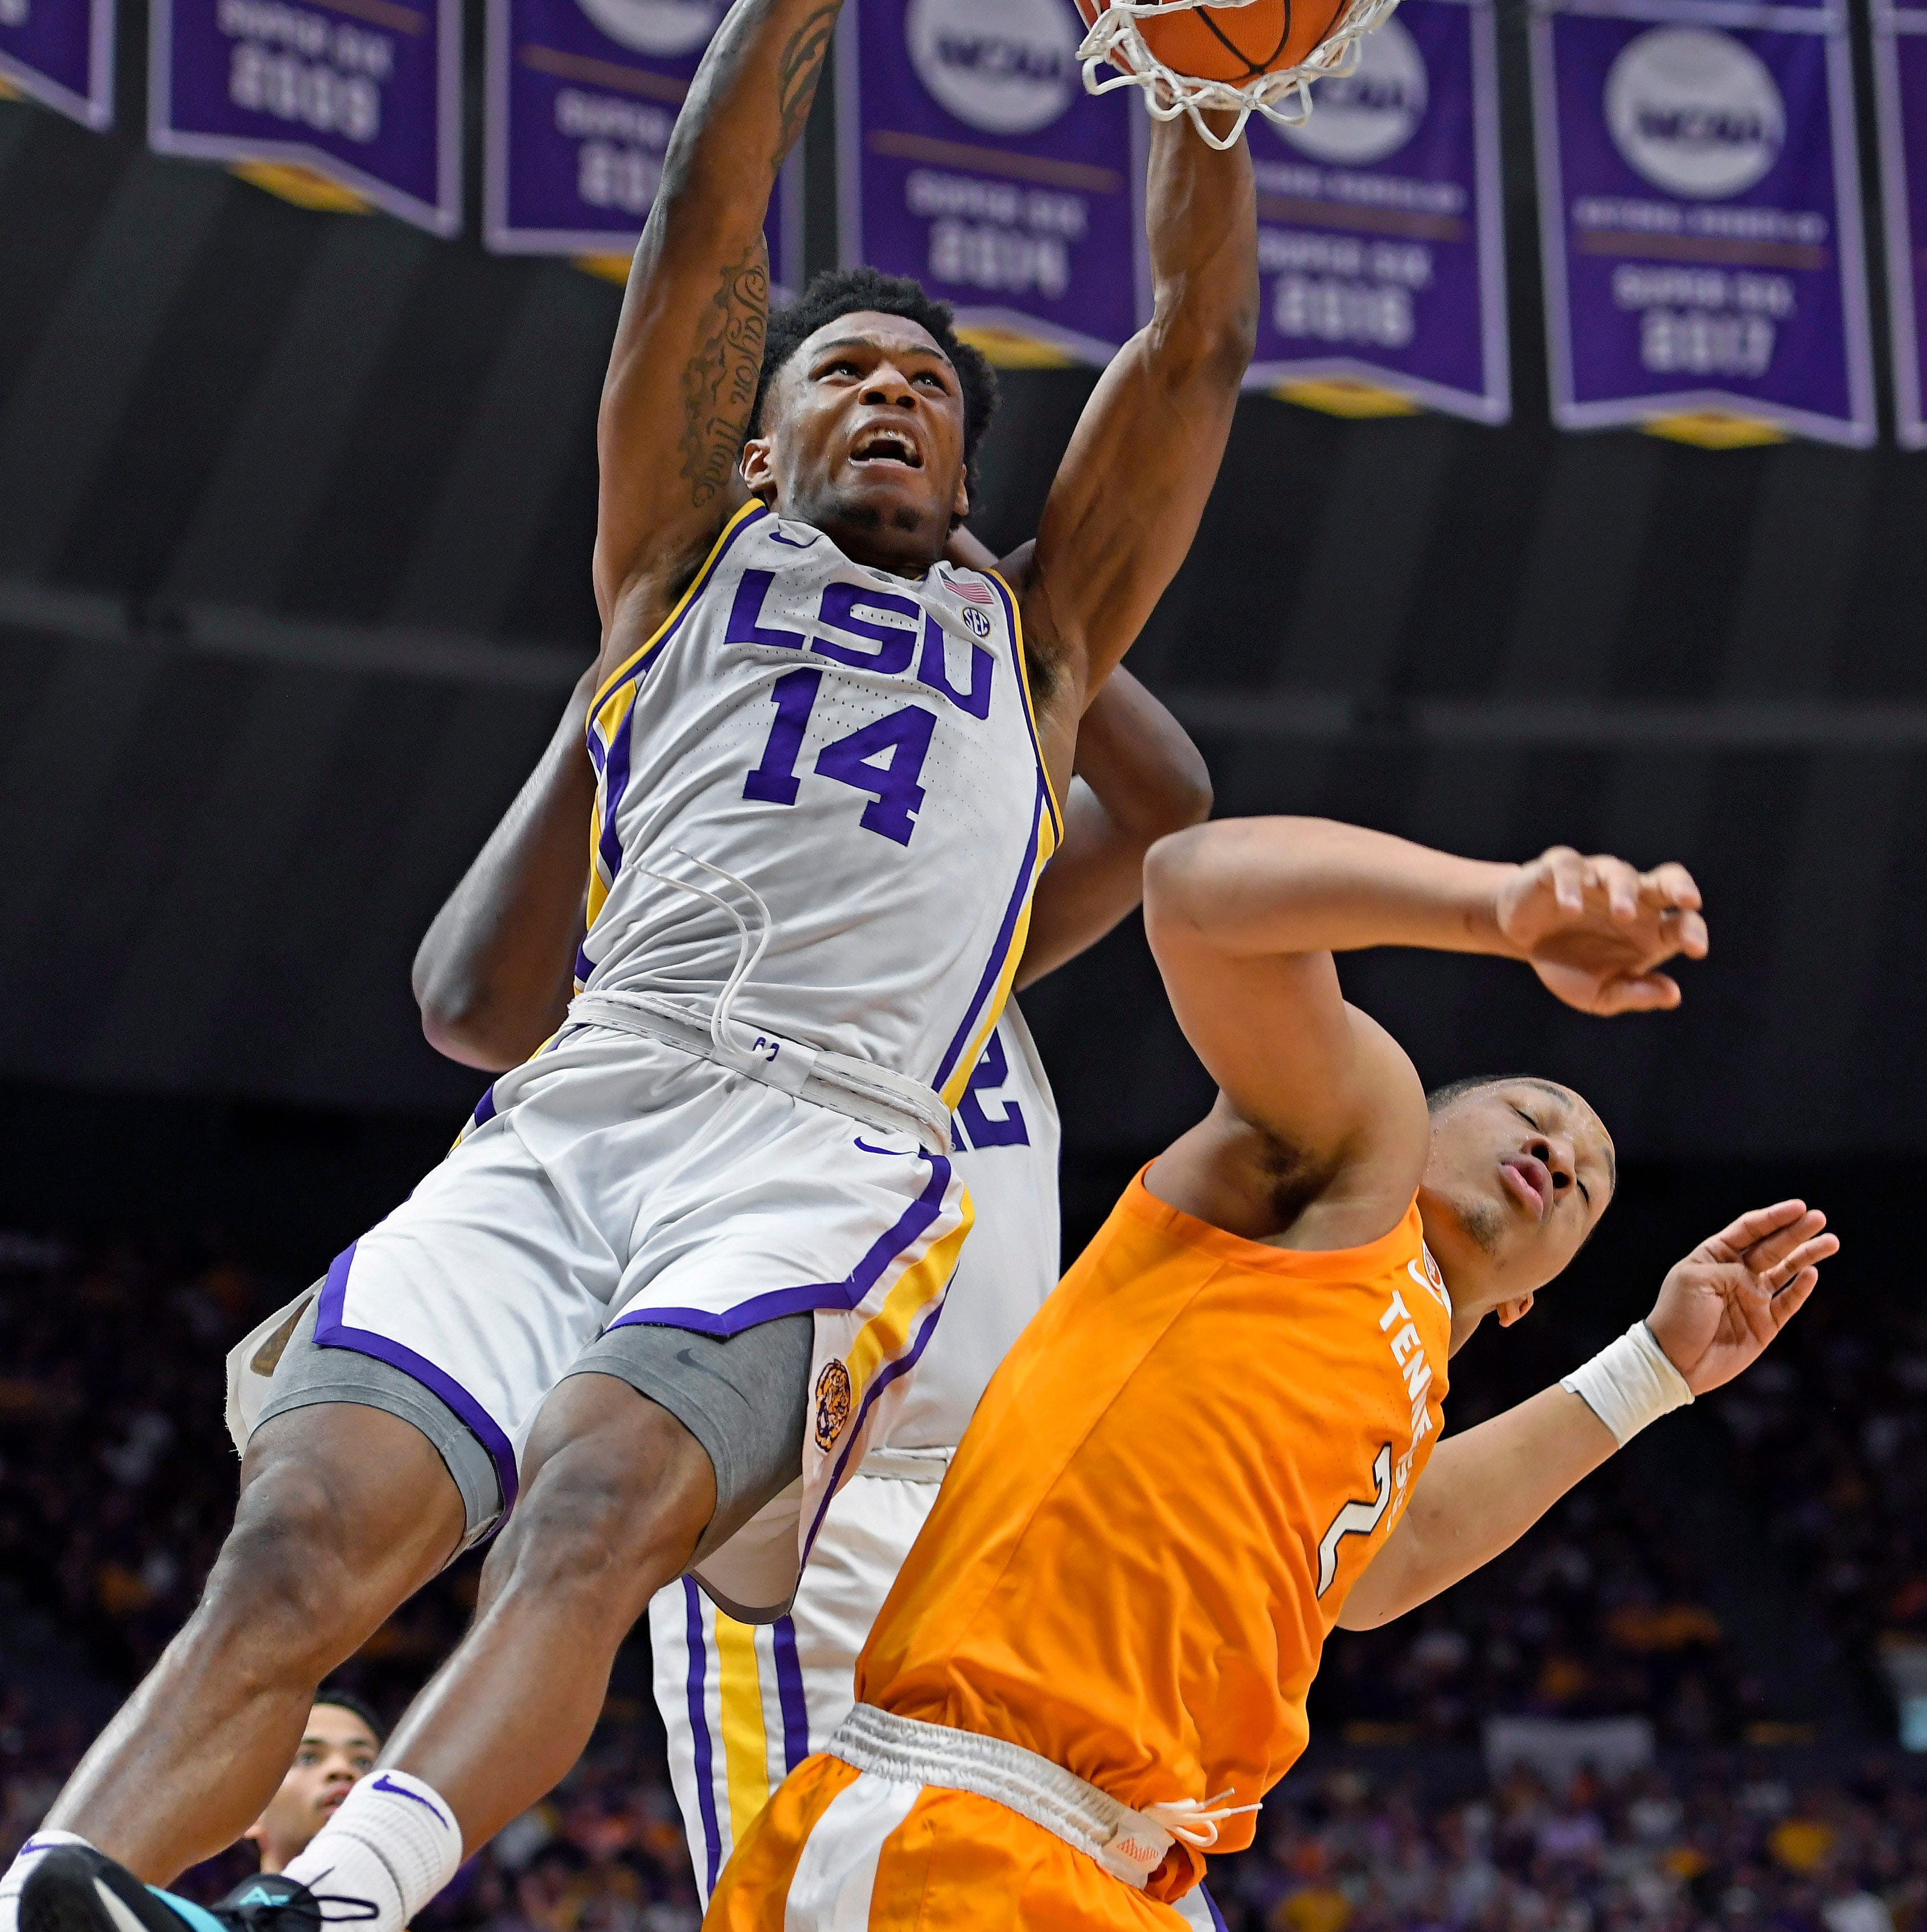 Dumb foul dooms Tennessee basketball in OT loss at LSU